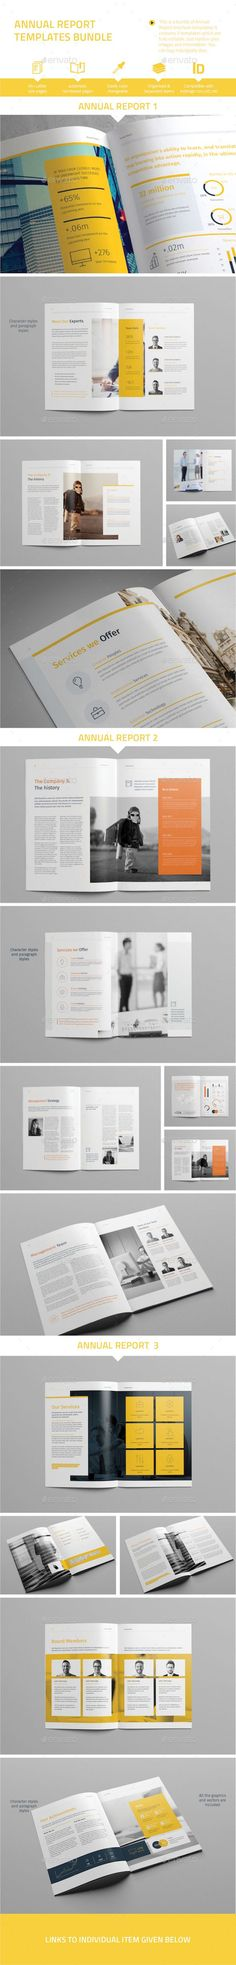 Annual Report Template InDesign INDD Bundle